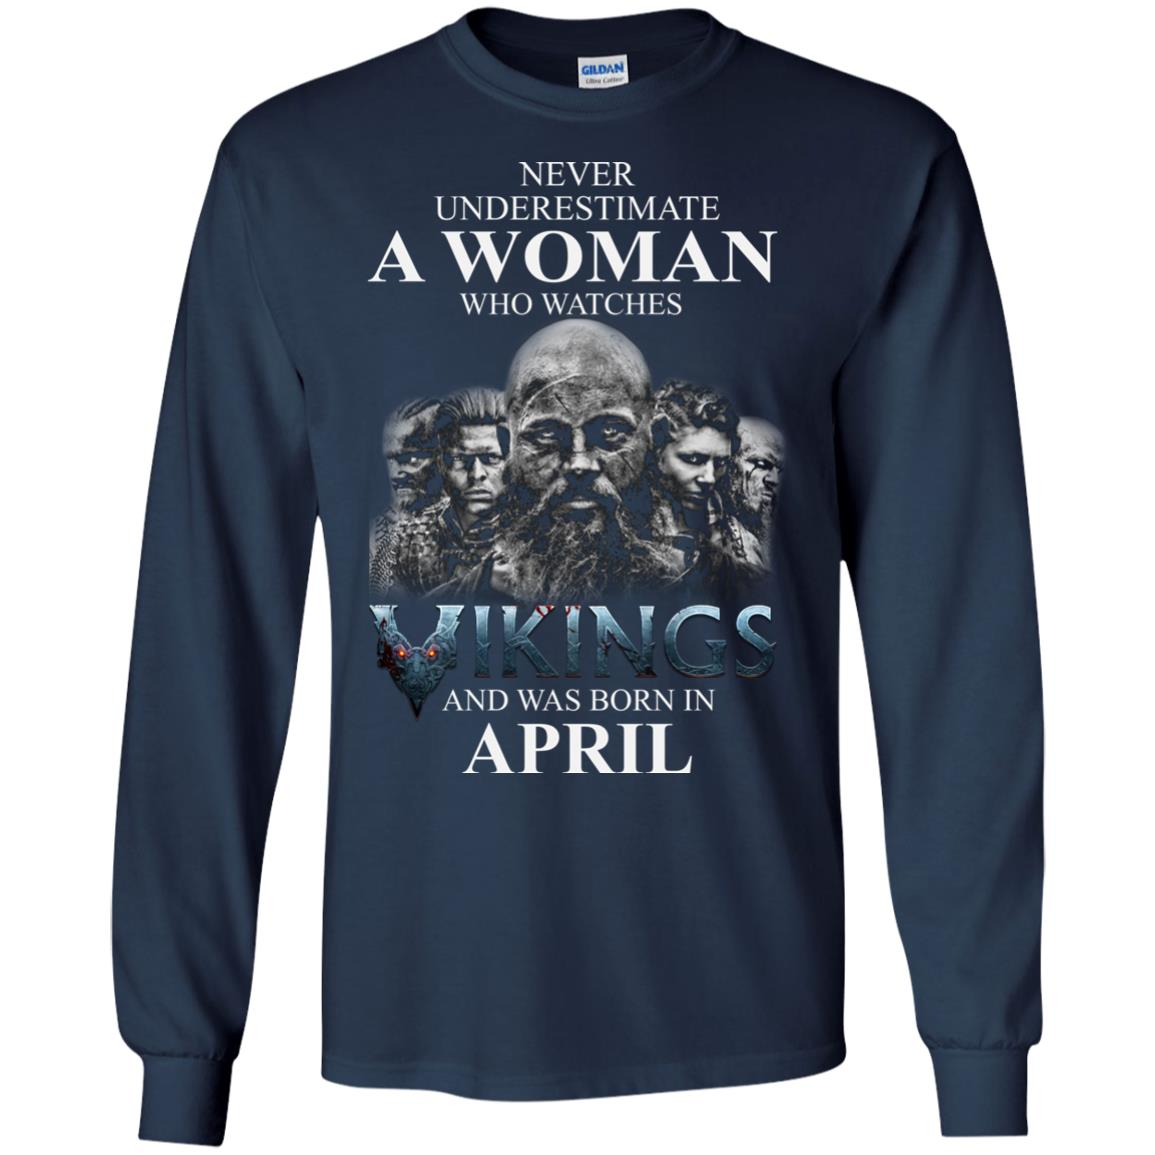 image 1318 - Never Underestimate A woman who watches Vikings and was born in April shirt